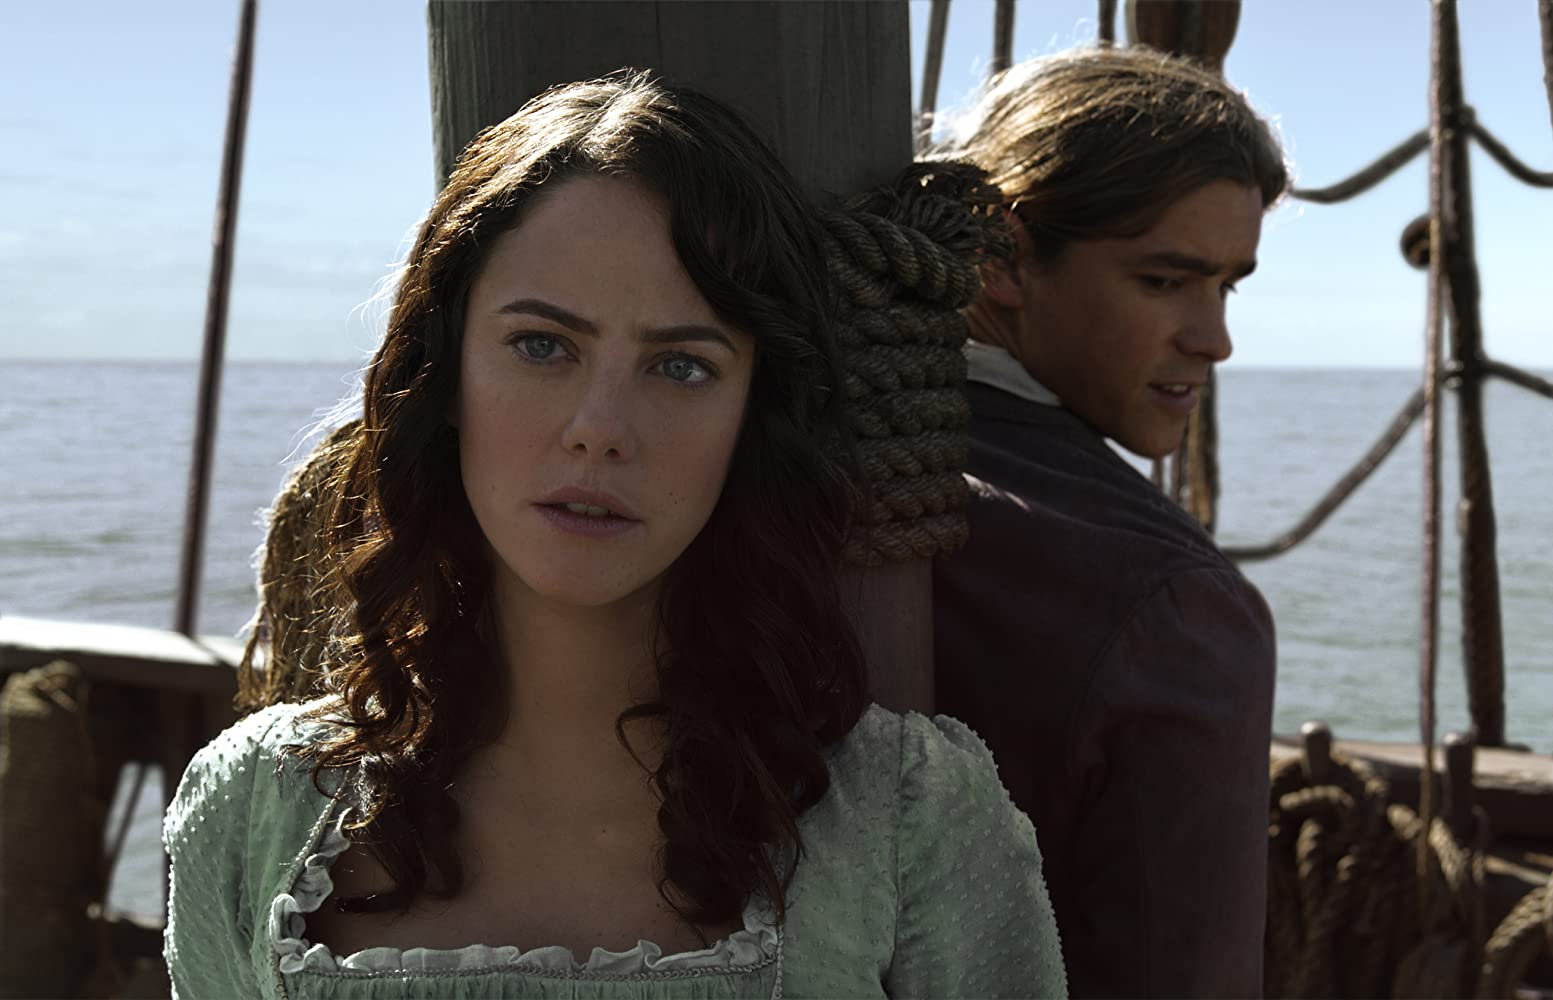 Kaya Scodelario and Brenton Thwaites in Pirates of the Caribbean: Dead Men Tell No Tales (2017)